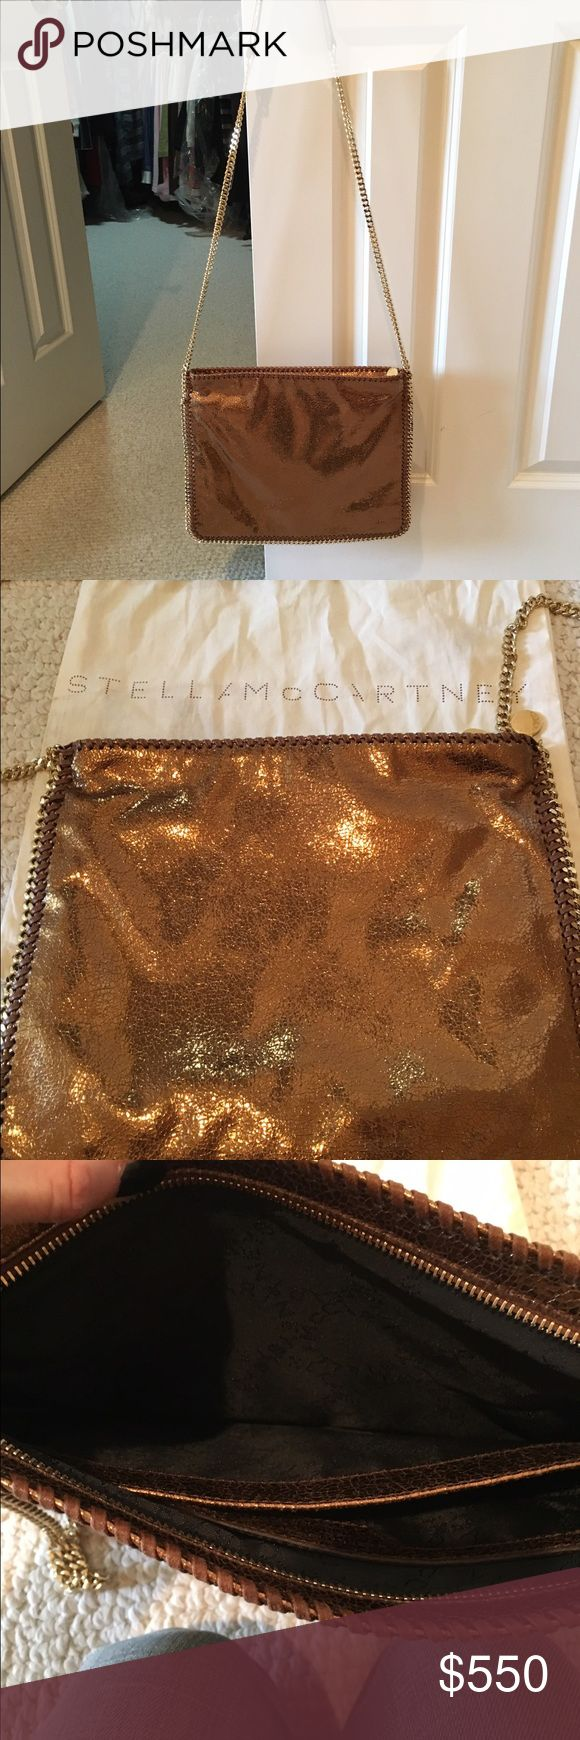 New Stella McCartney bronze large crossbody bag Gorgeous & new! Hard to find (was limited edition at Saks only) bronze large Stella McCartney crossbody/shoulder bag! 2 large compartments inside along with a smaller pocket. Comes with dust bag. Stella McCartney Bags Crossbody Bags